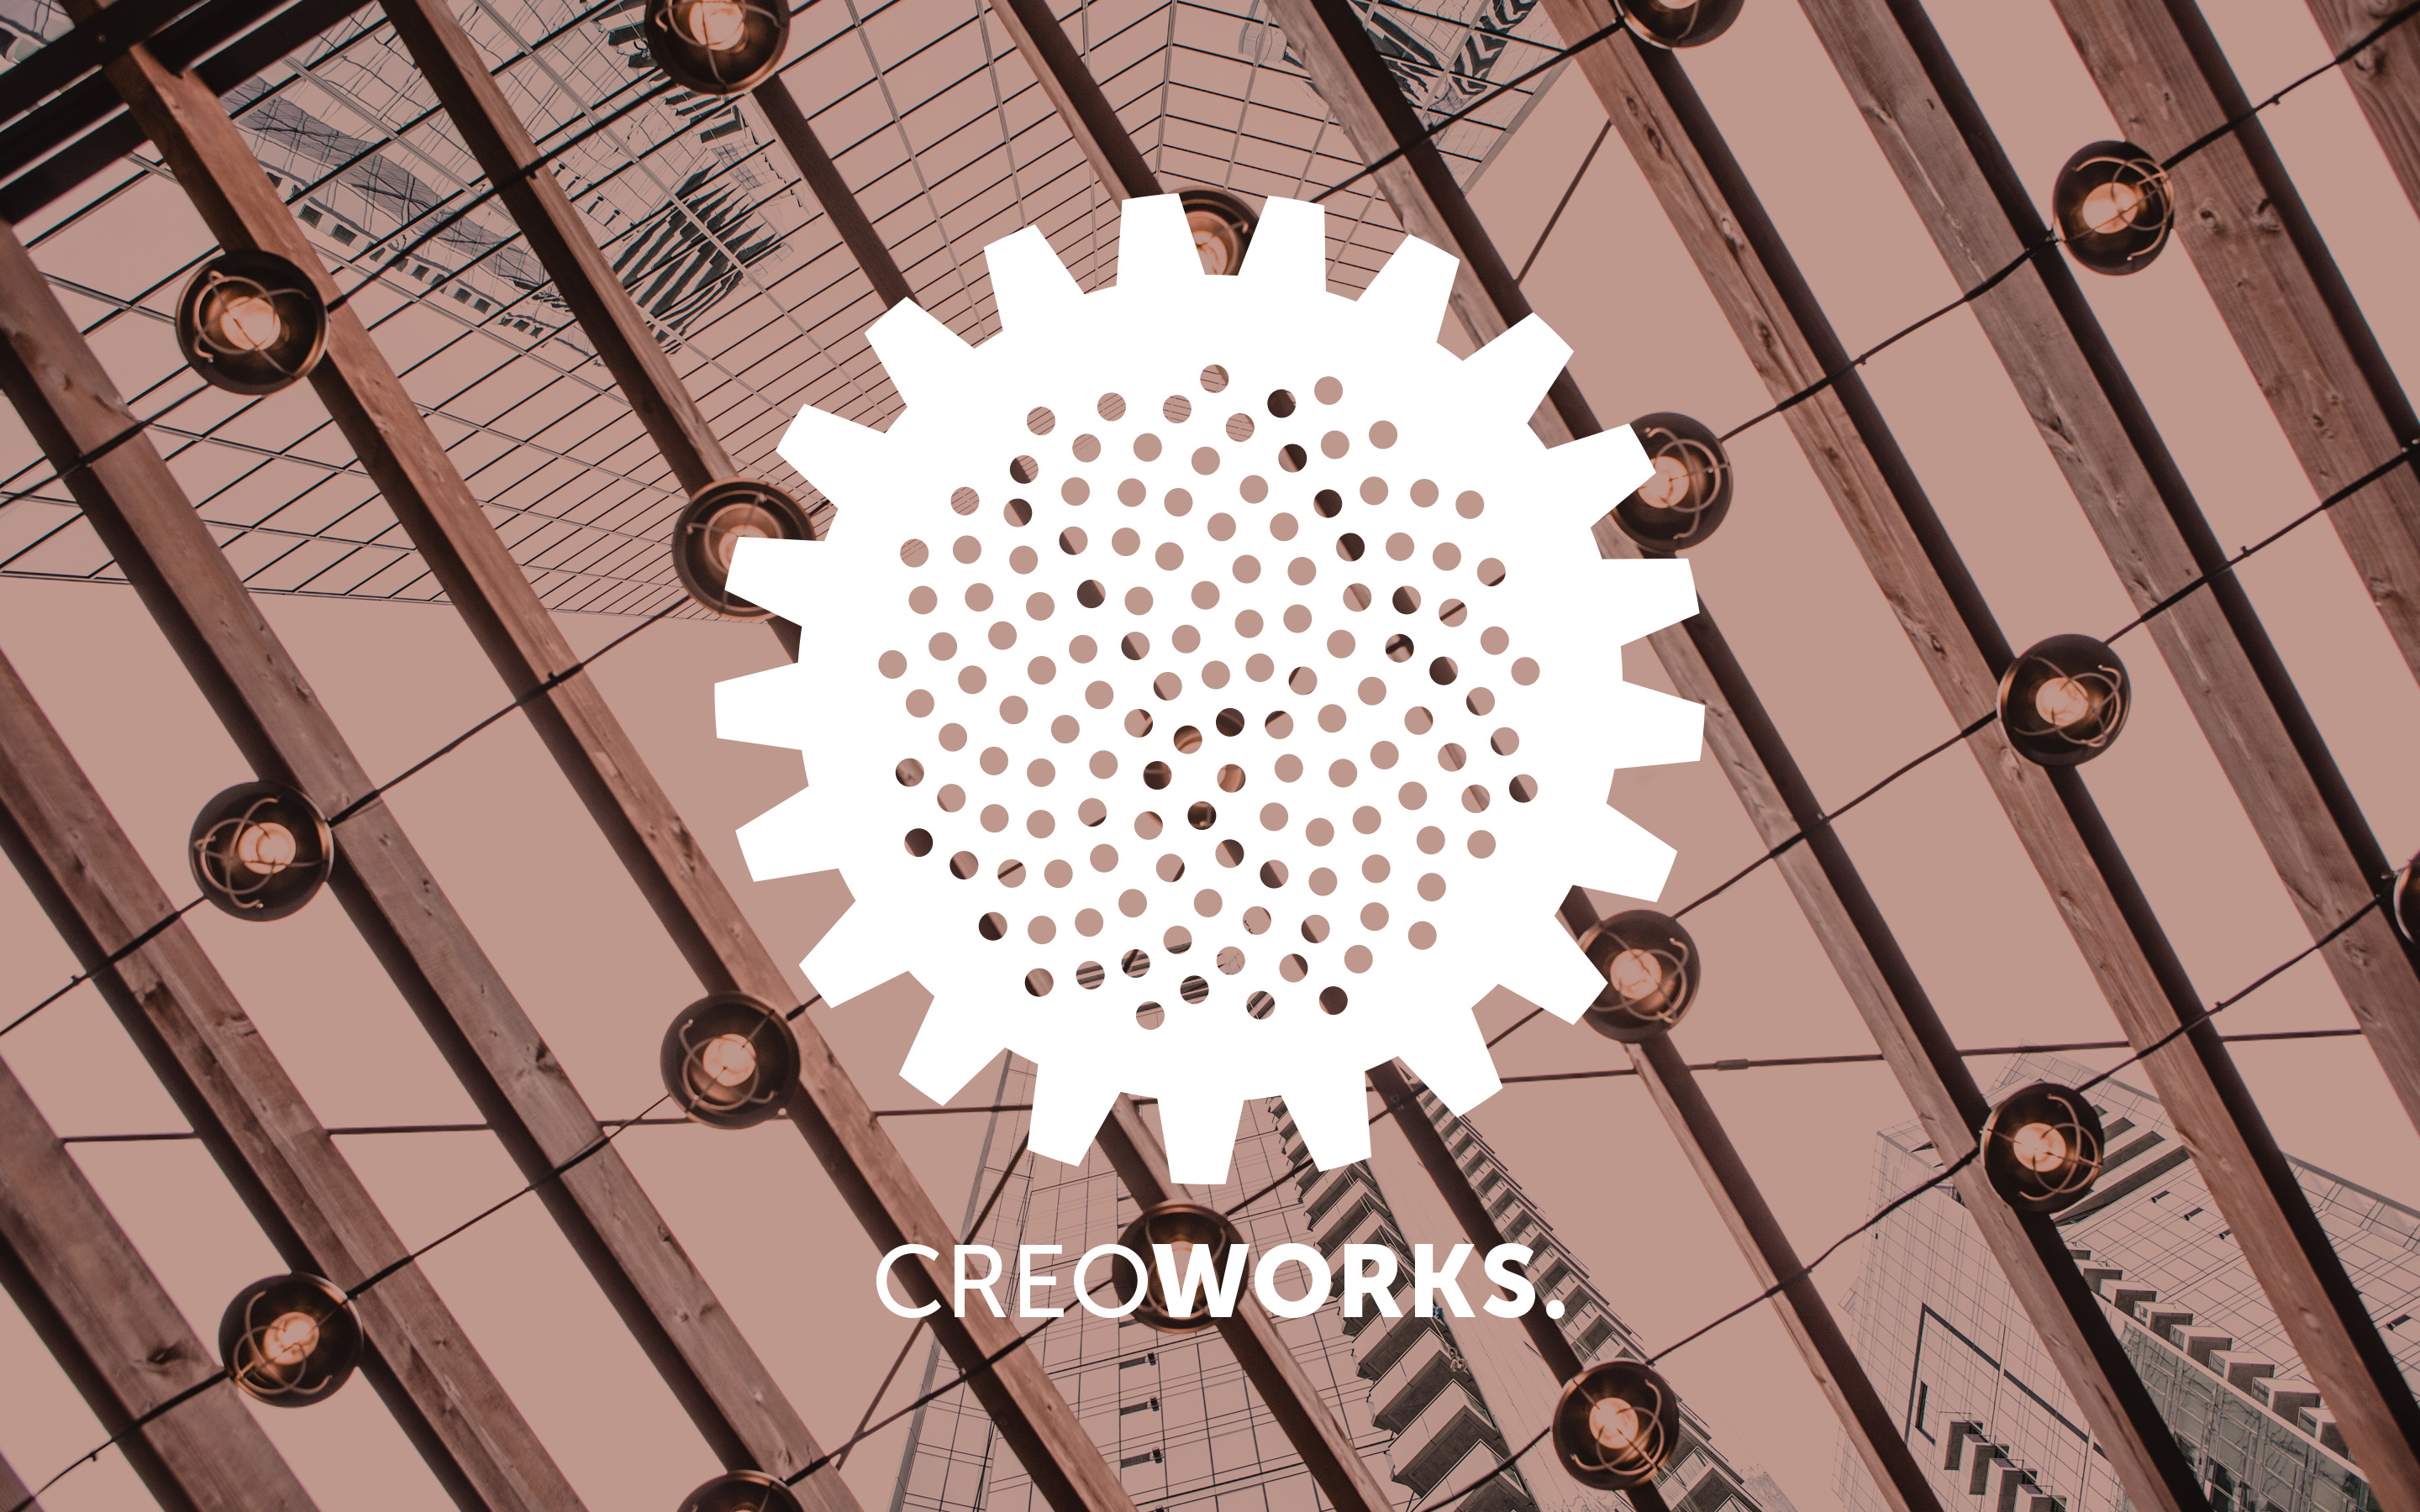 The Creoworks Website